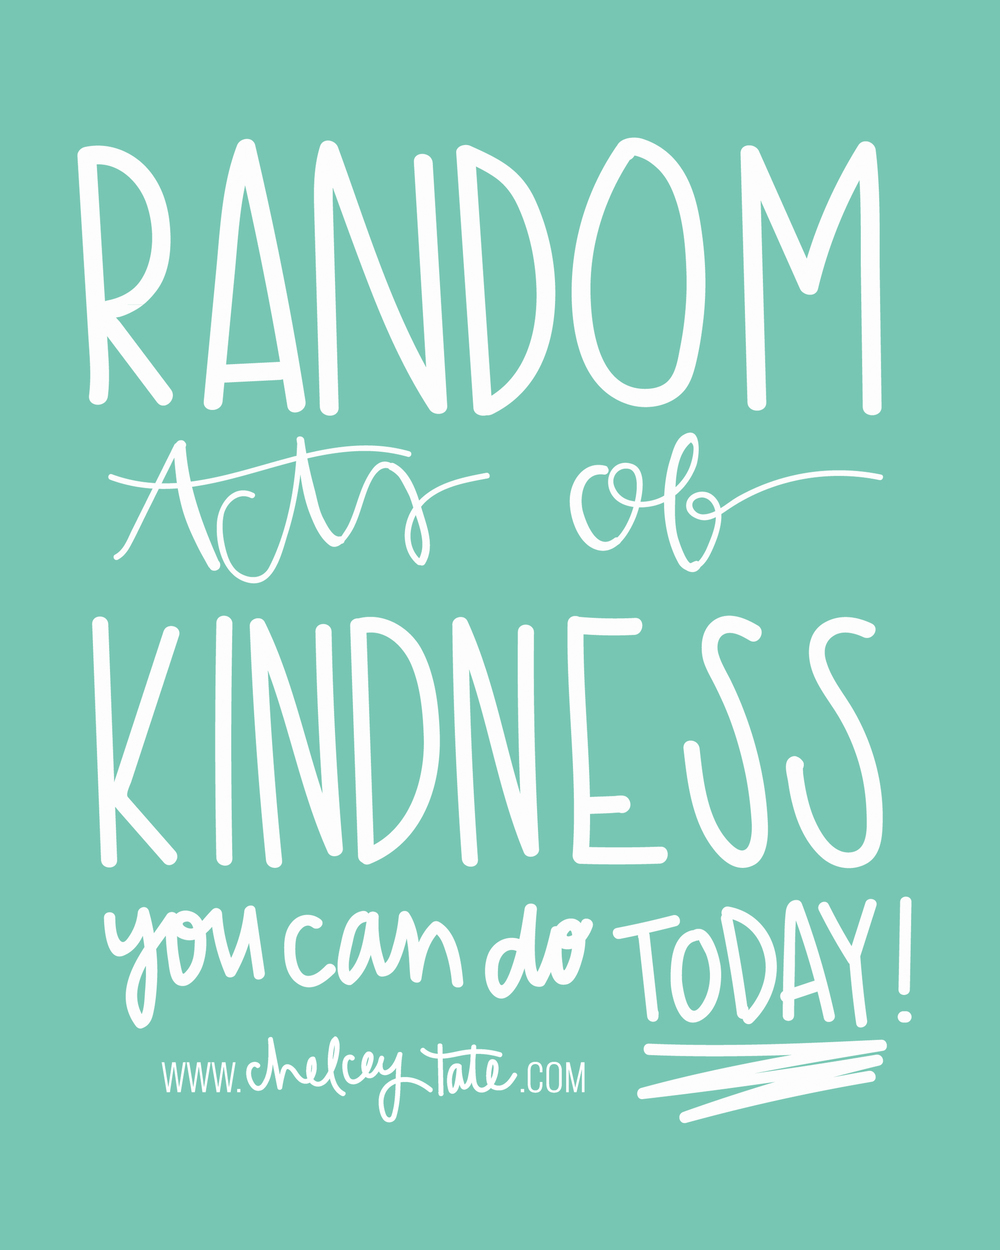 25 Random Acts of Kindness You Can Do Today!  chelceytate.com